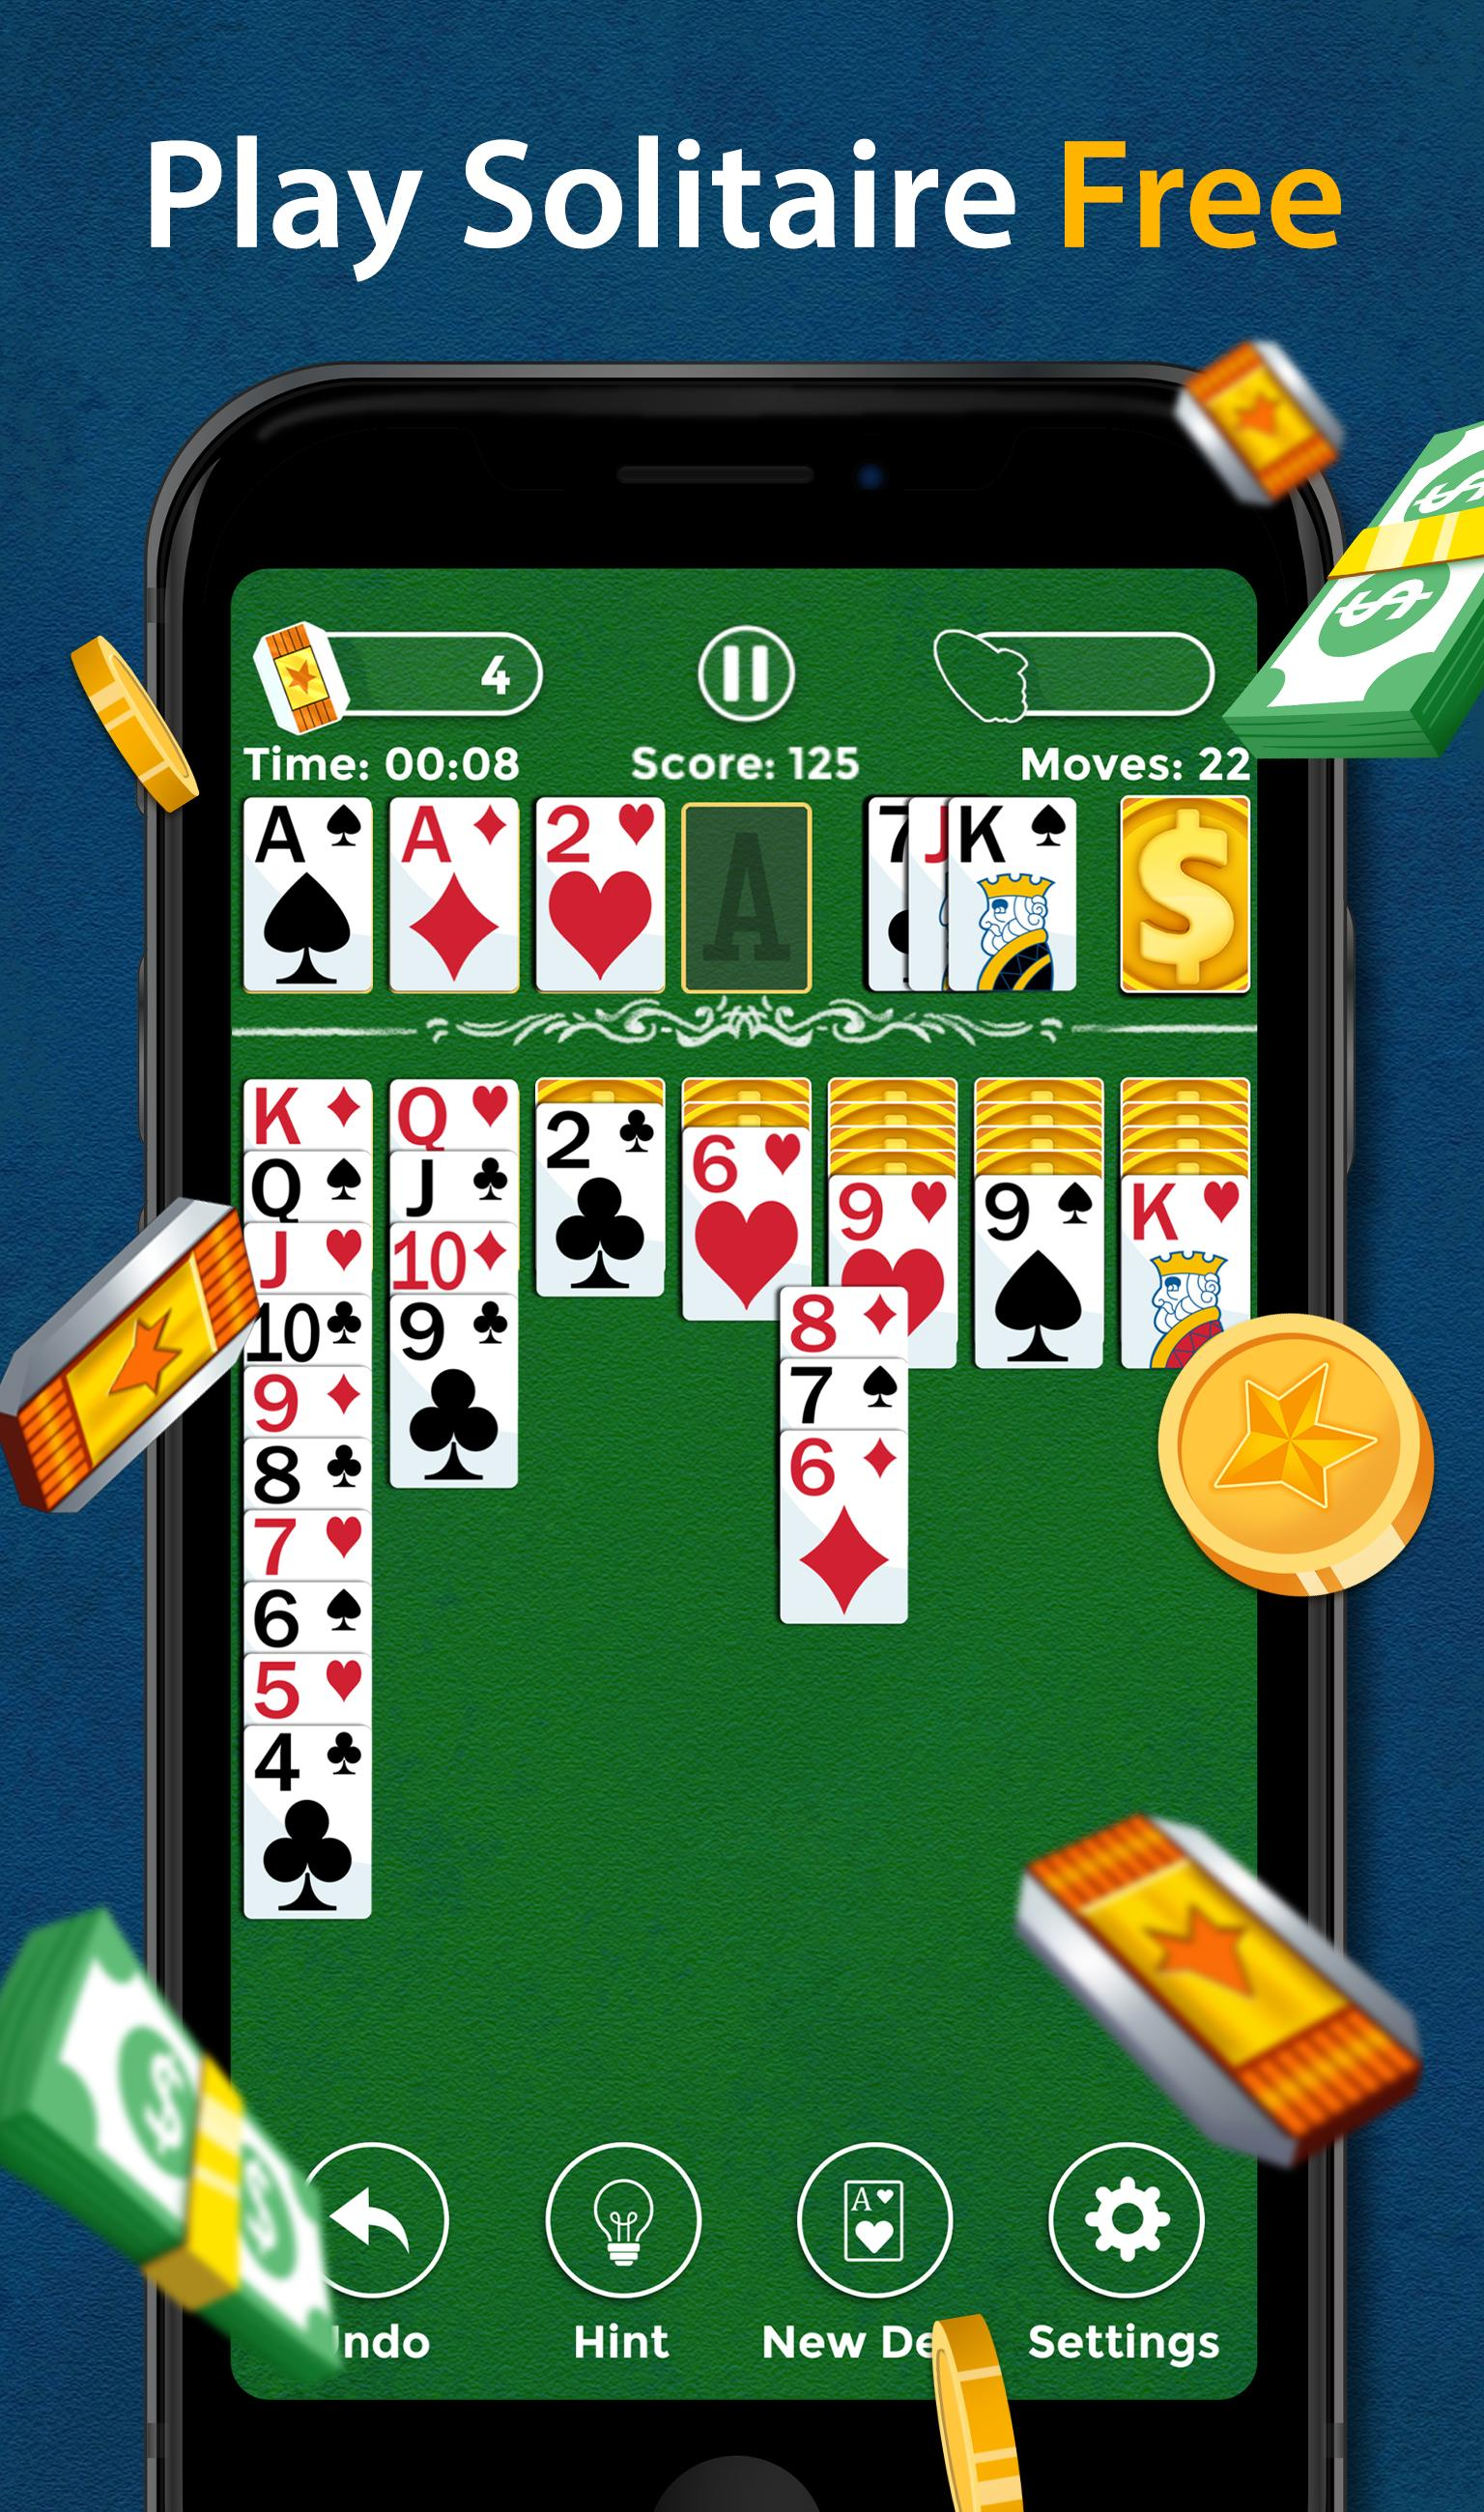 Solitaire Make Free Money and Play the Card Game 1.8.5 Screenshot 1